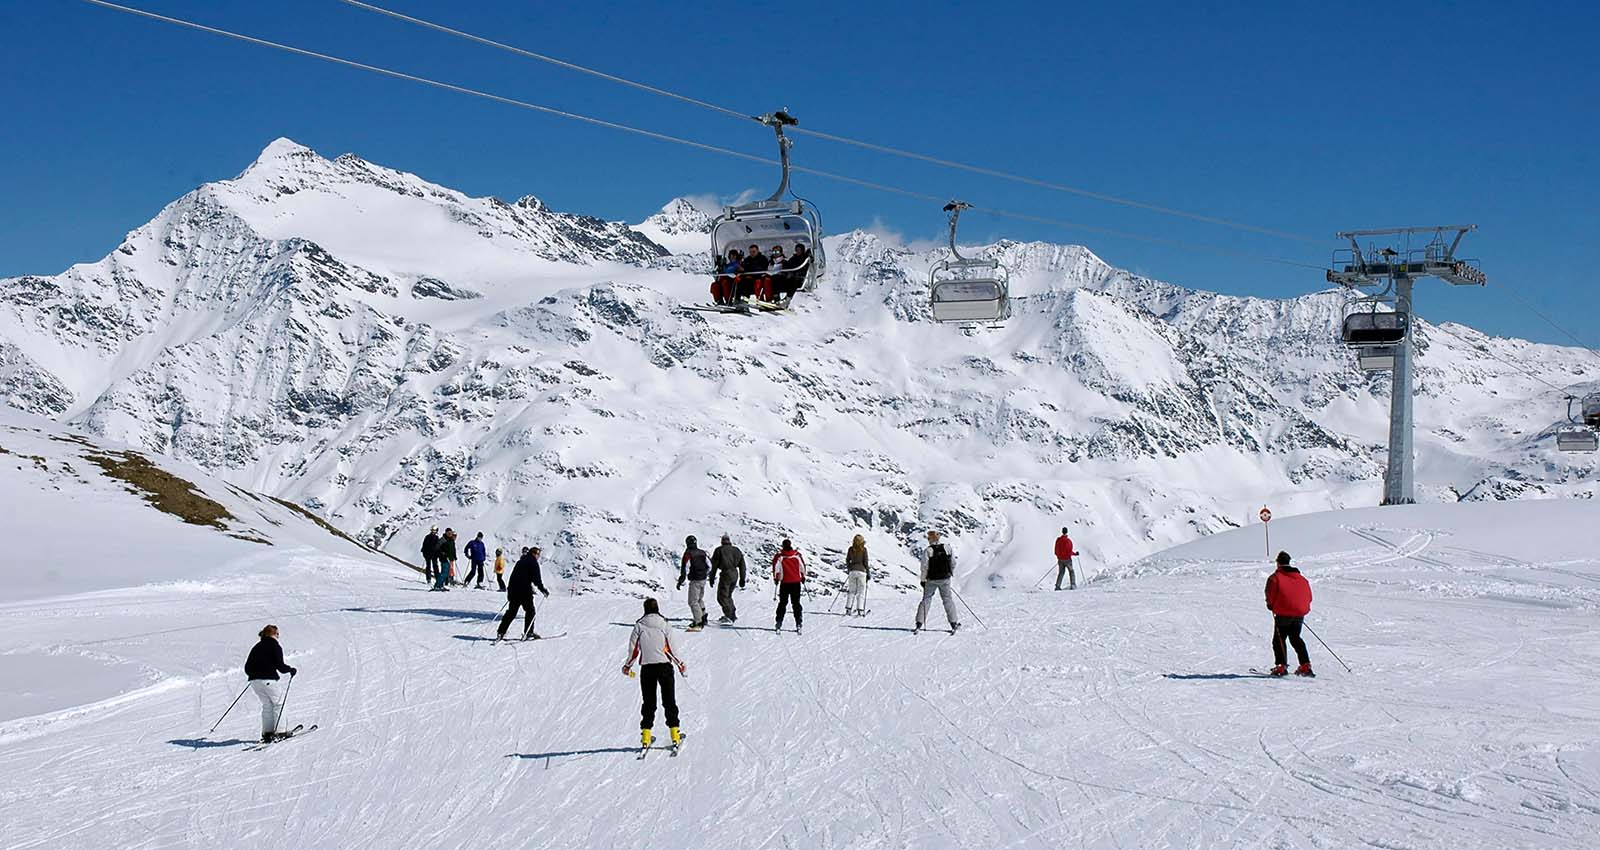 Take your school or group on ski trip to Italy